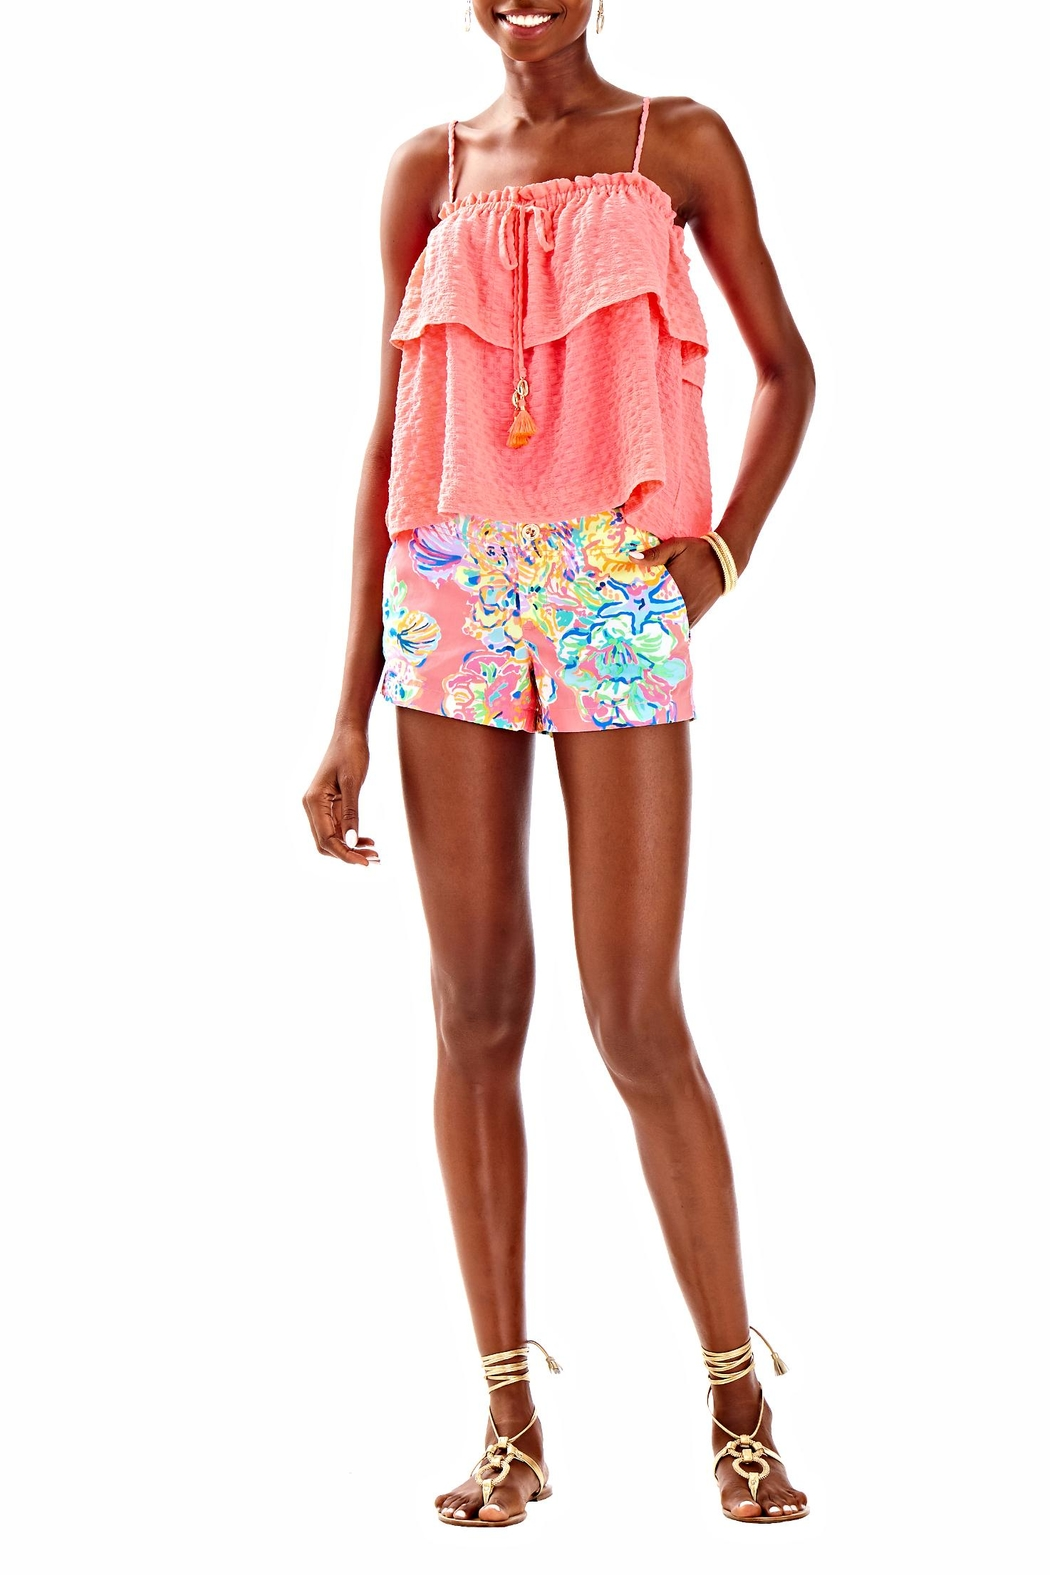 Lilly Pulitzer Mays Top - Side Cropped Image